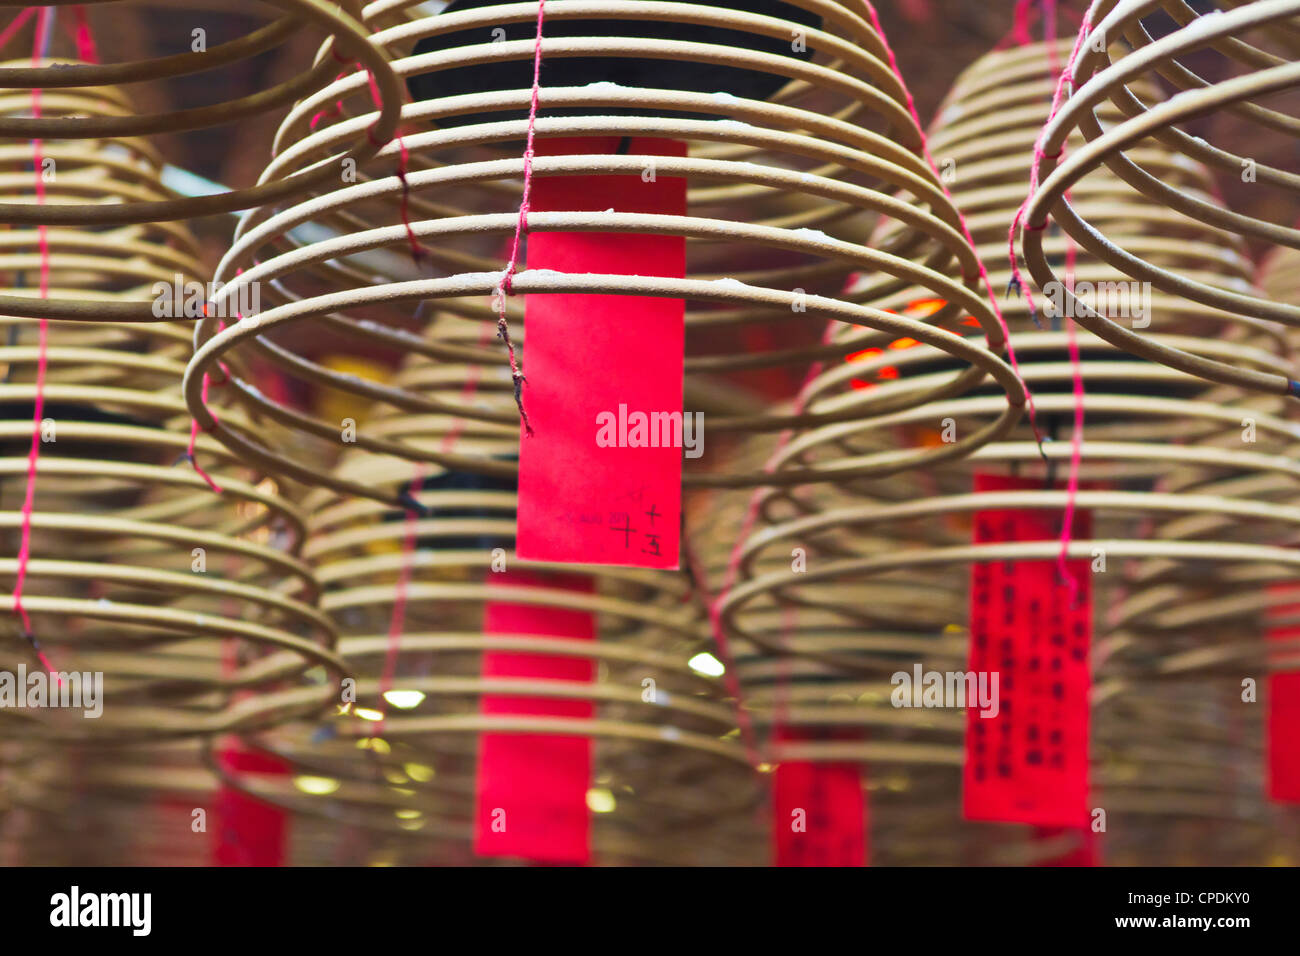 Incense coils and prayers written on red tags in the Man Mo Temple, Hong Kong, China, Asia - Stock Image